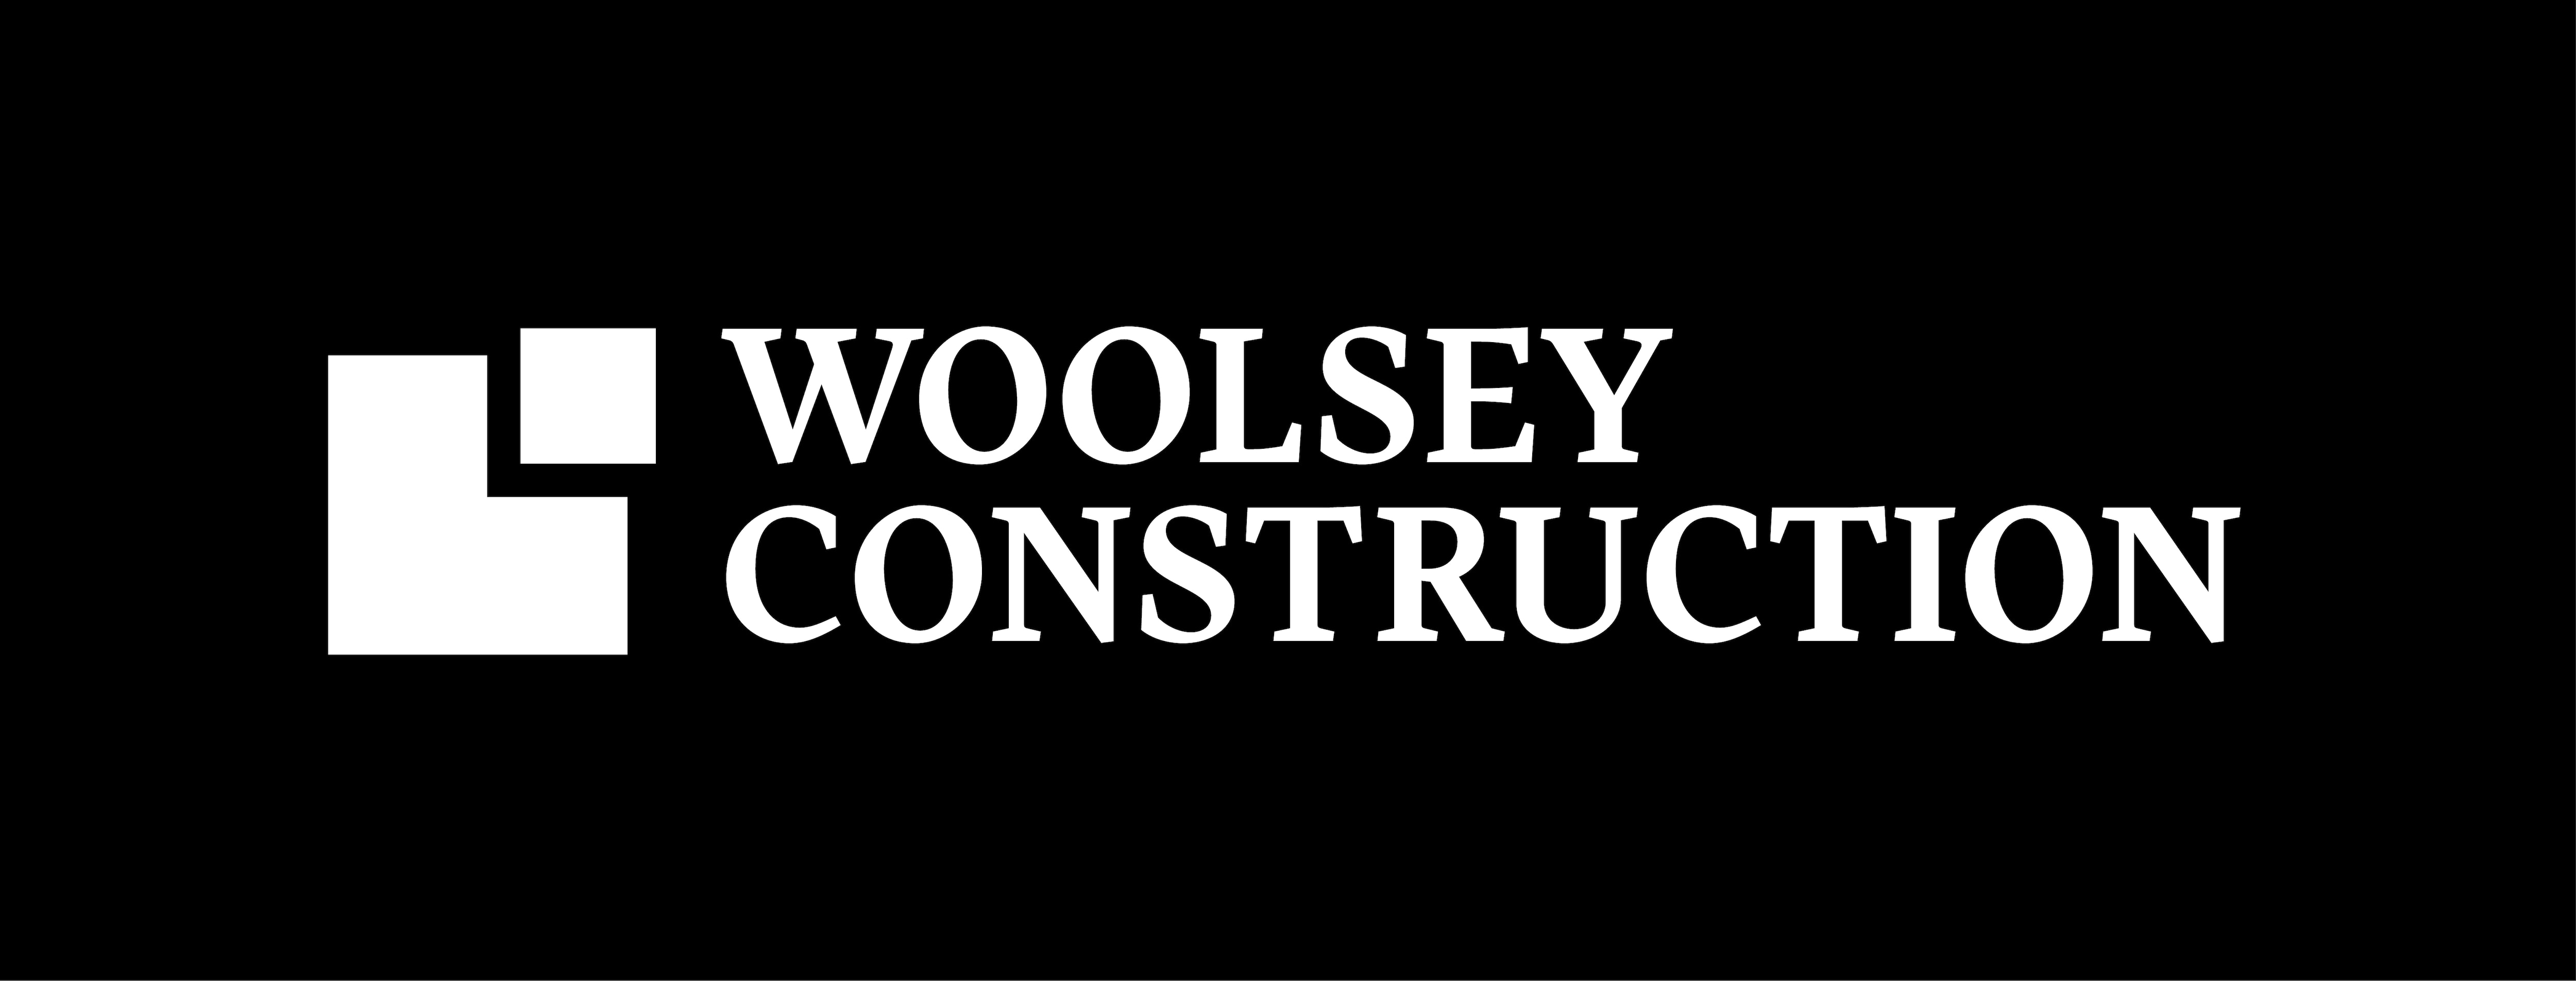 WOOLSEY CONSTRUCTION logo